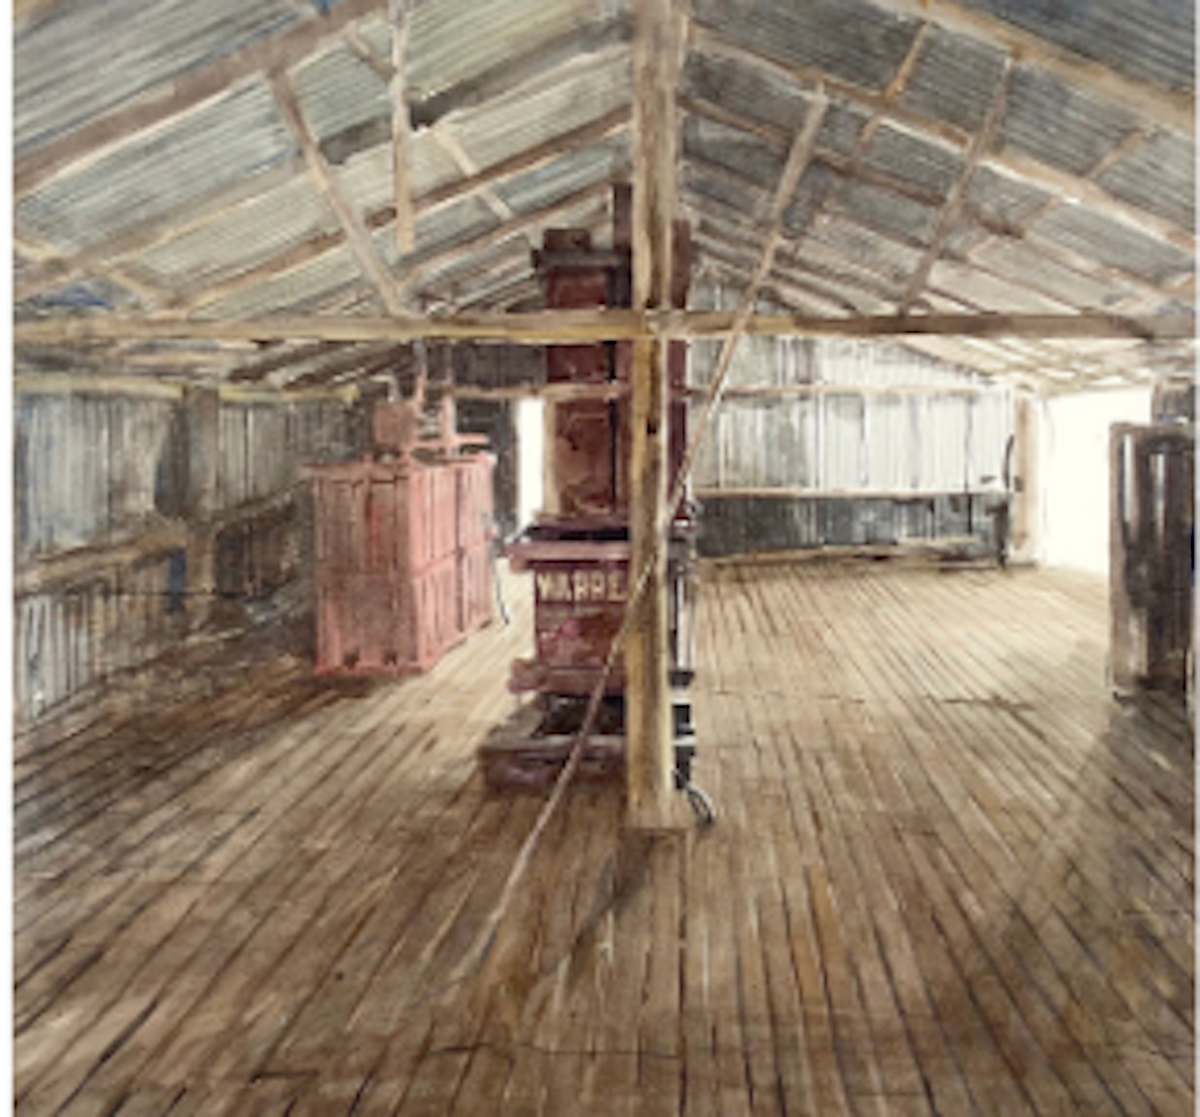 Watercolour painting by Christine Porter showing the intreior of a shearing shed, from near the roof. looking down on an empty woolroom with a central post, beam and old red woolpress.